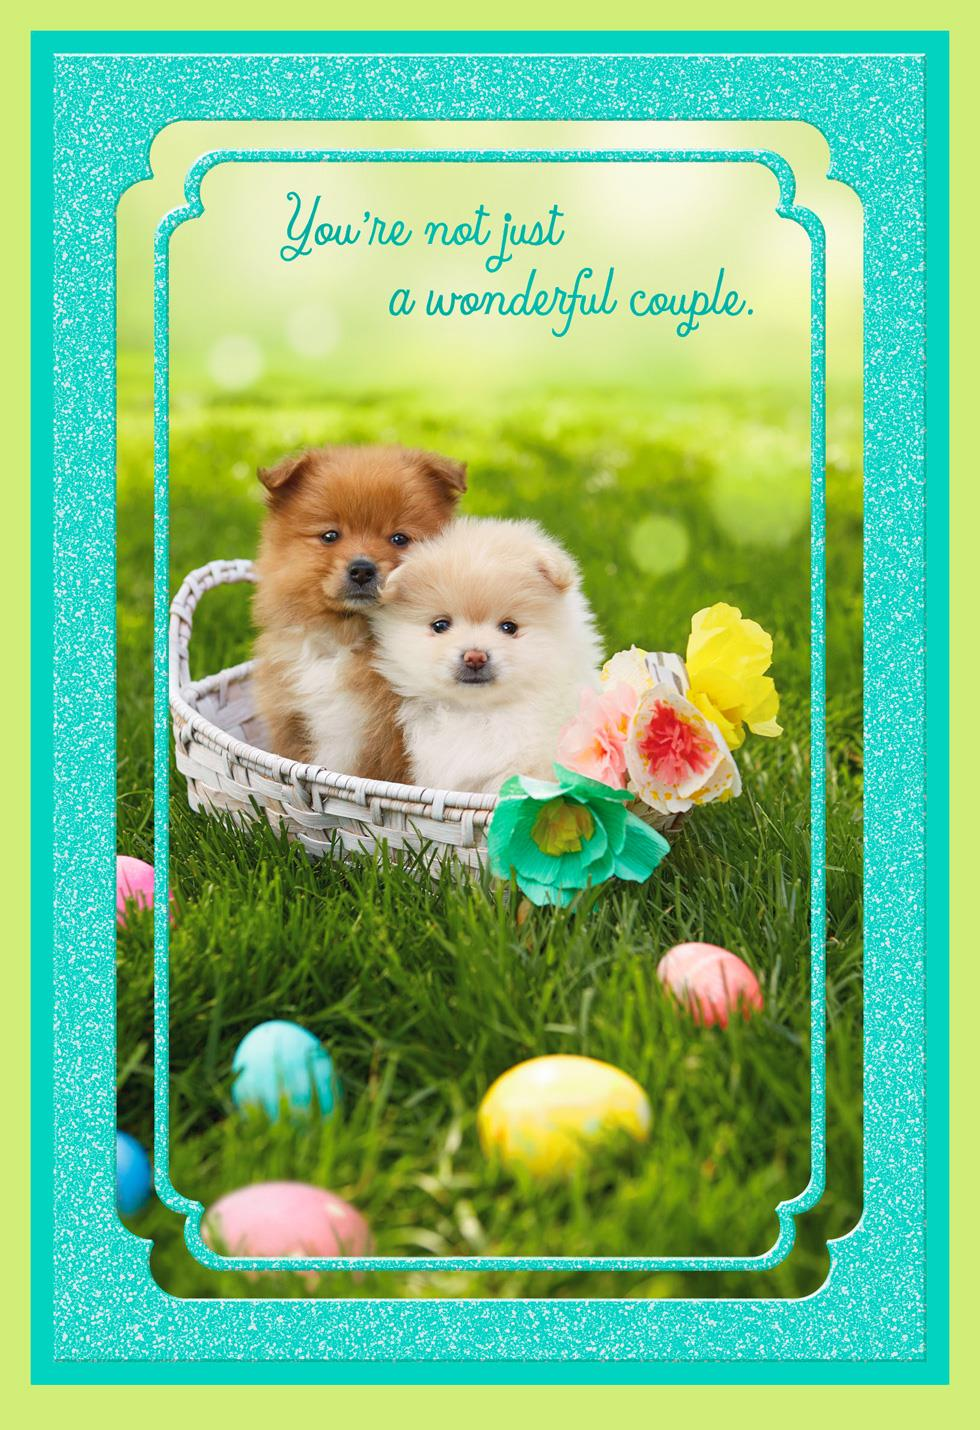 Wonderful Couple Puppies Easter Card Greeting Cards